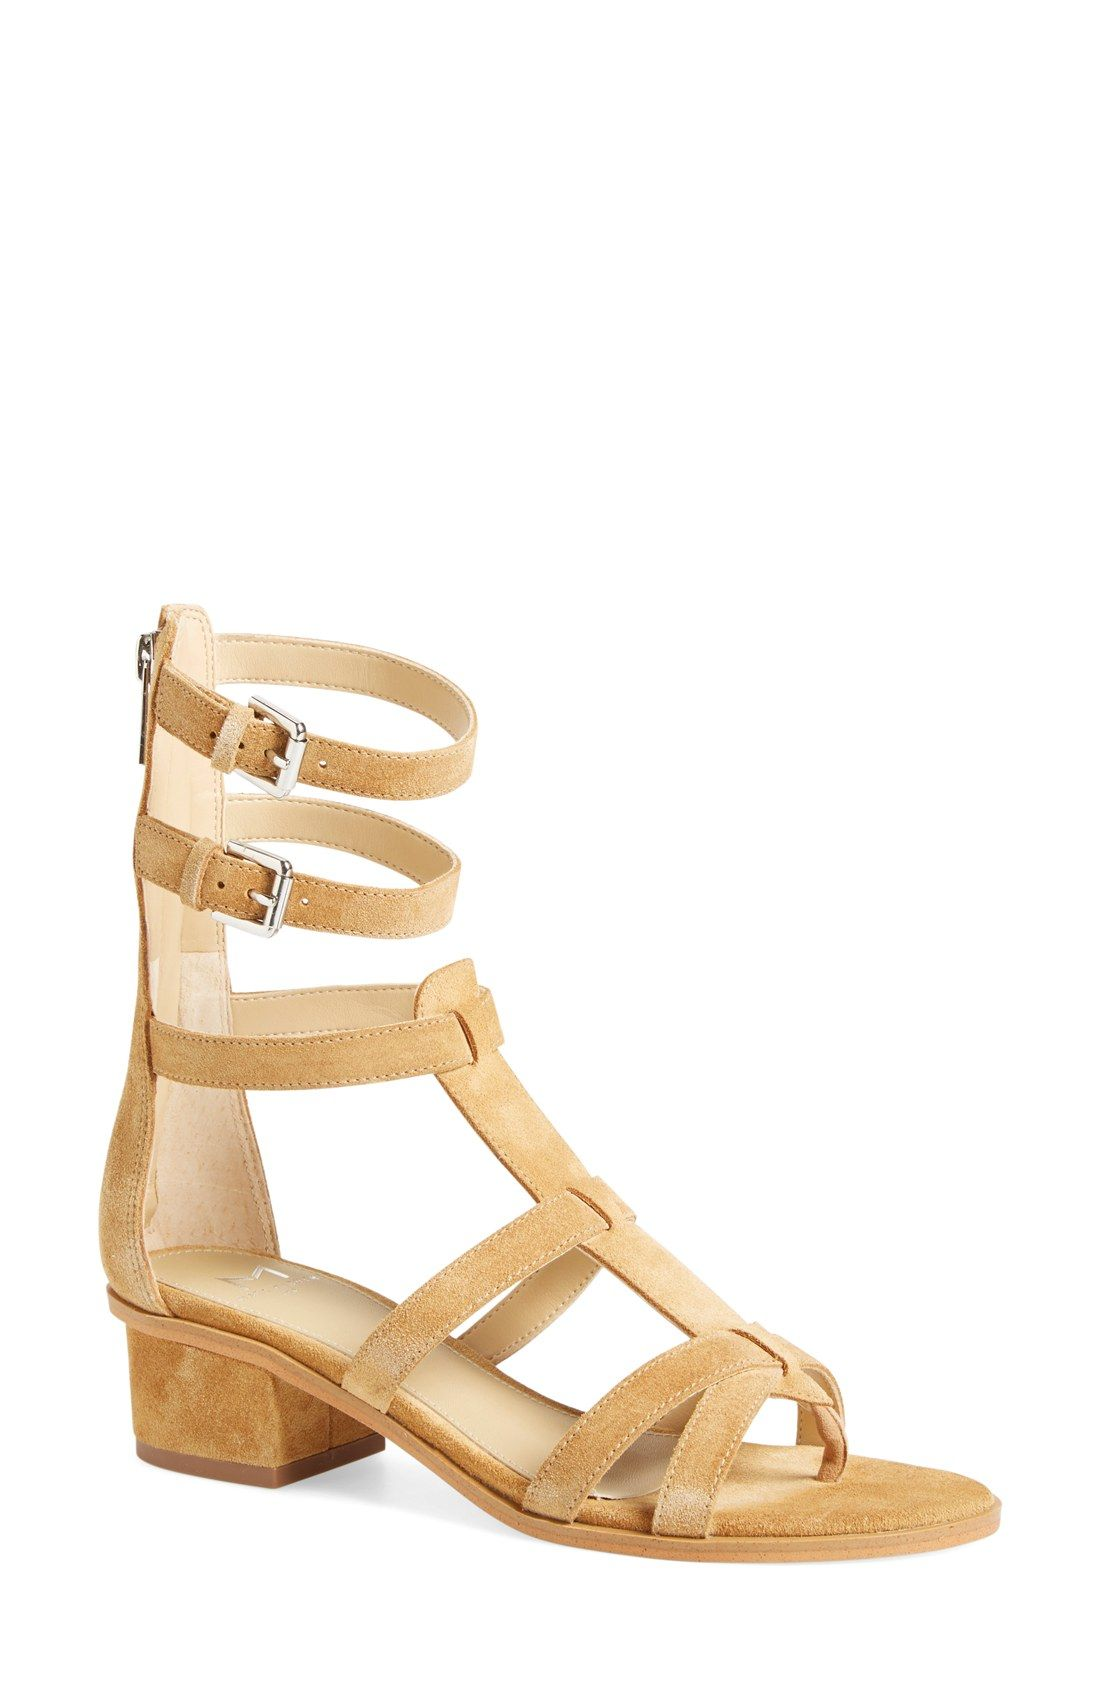 Style: For Spring - block sandals. Marc Fisher LTD 'Fawn ...